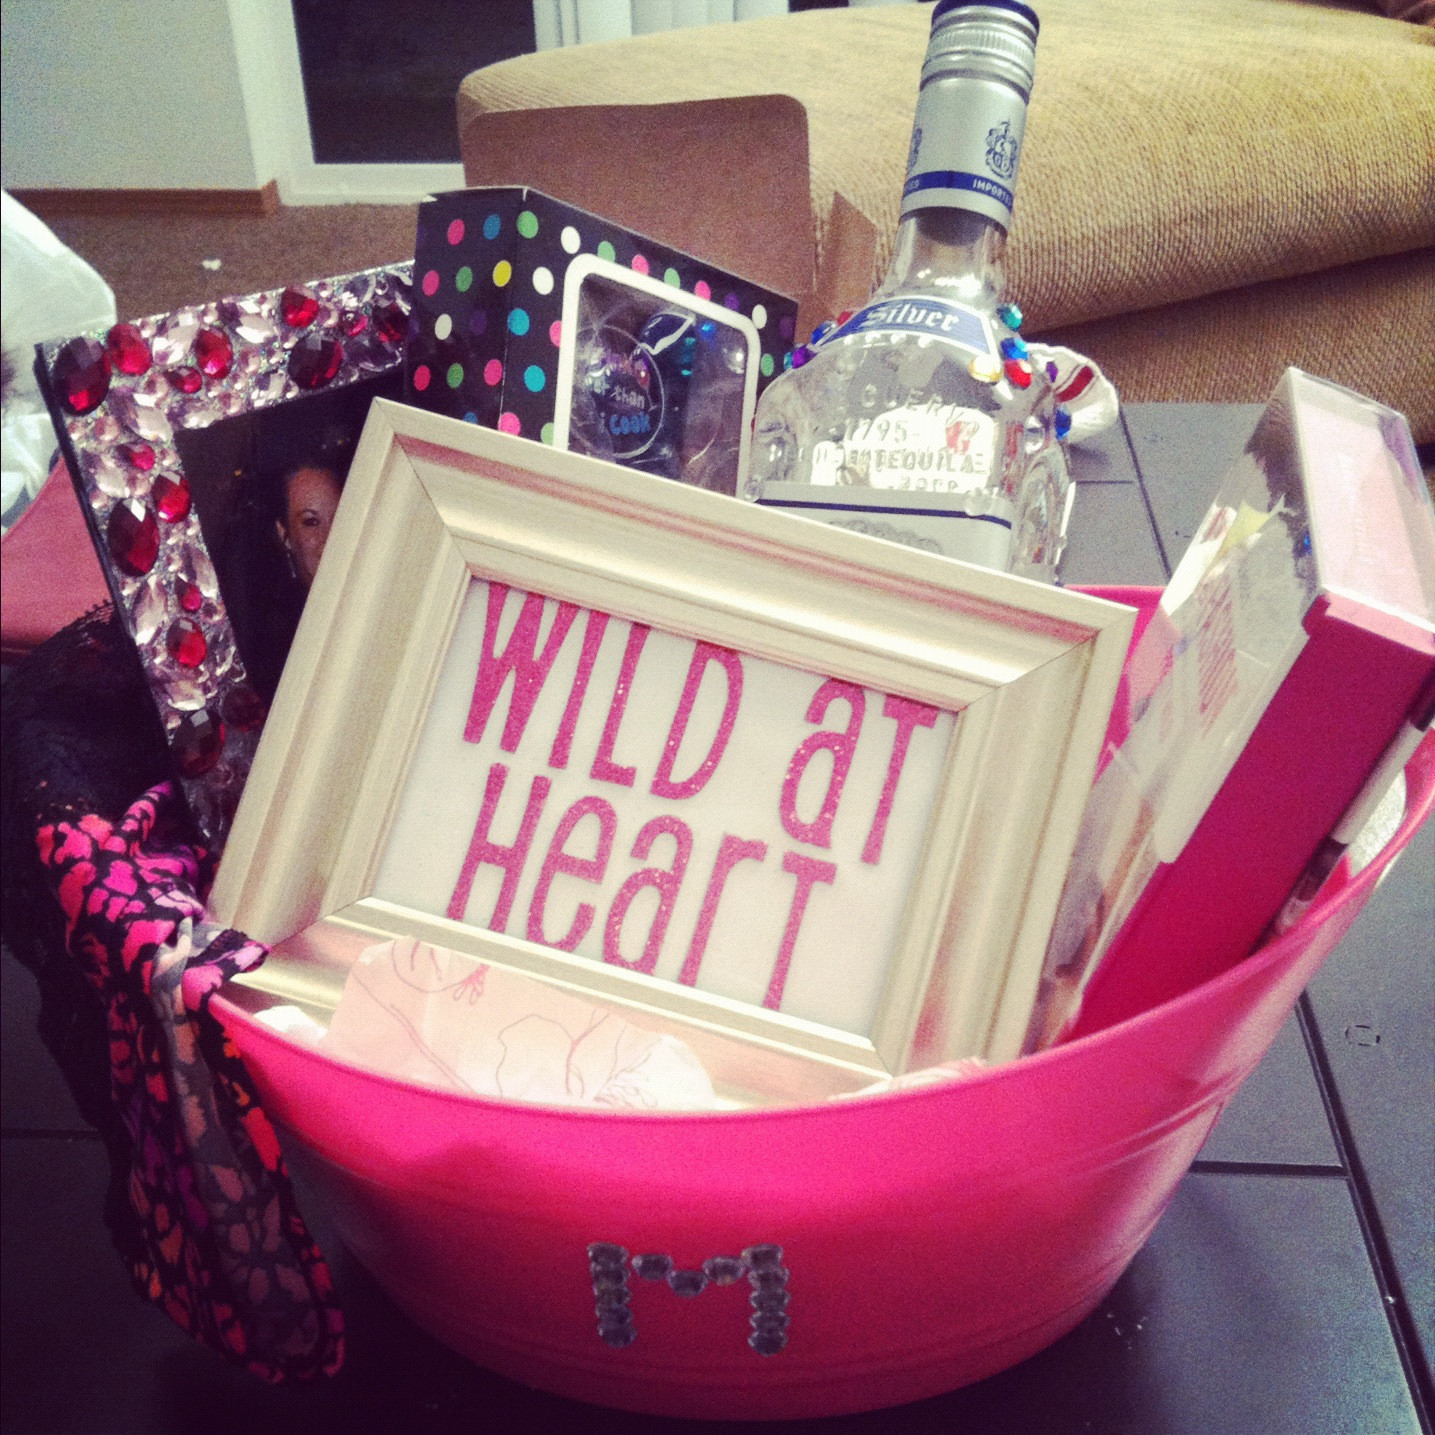 Best ideas about Diy Gift Basket Ideas For Her . Save or Pin DIY Wild at Heart Gift Basket Now.